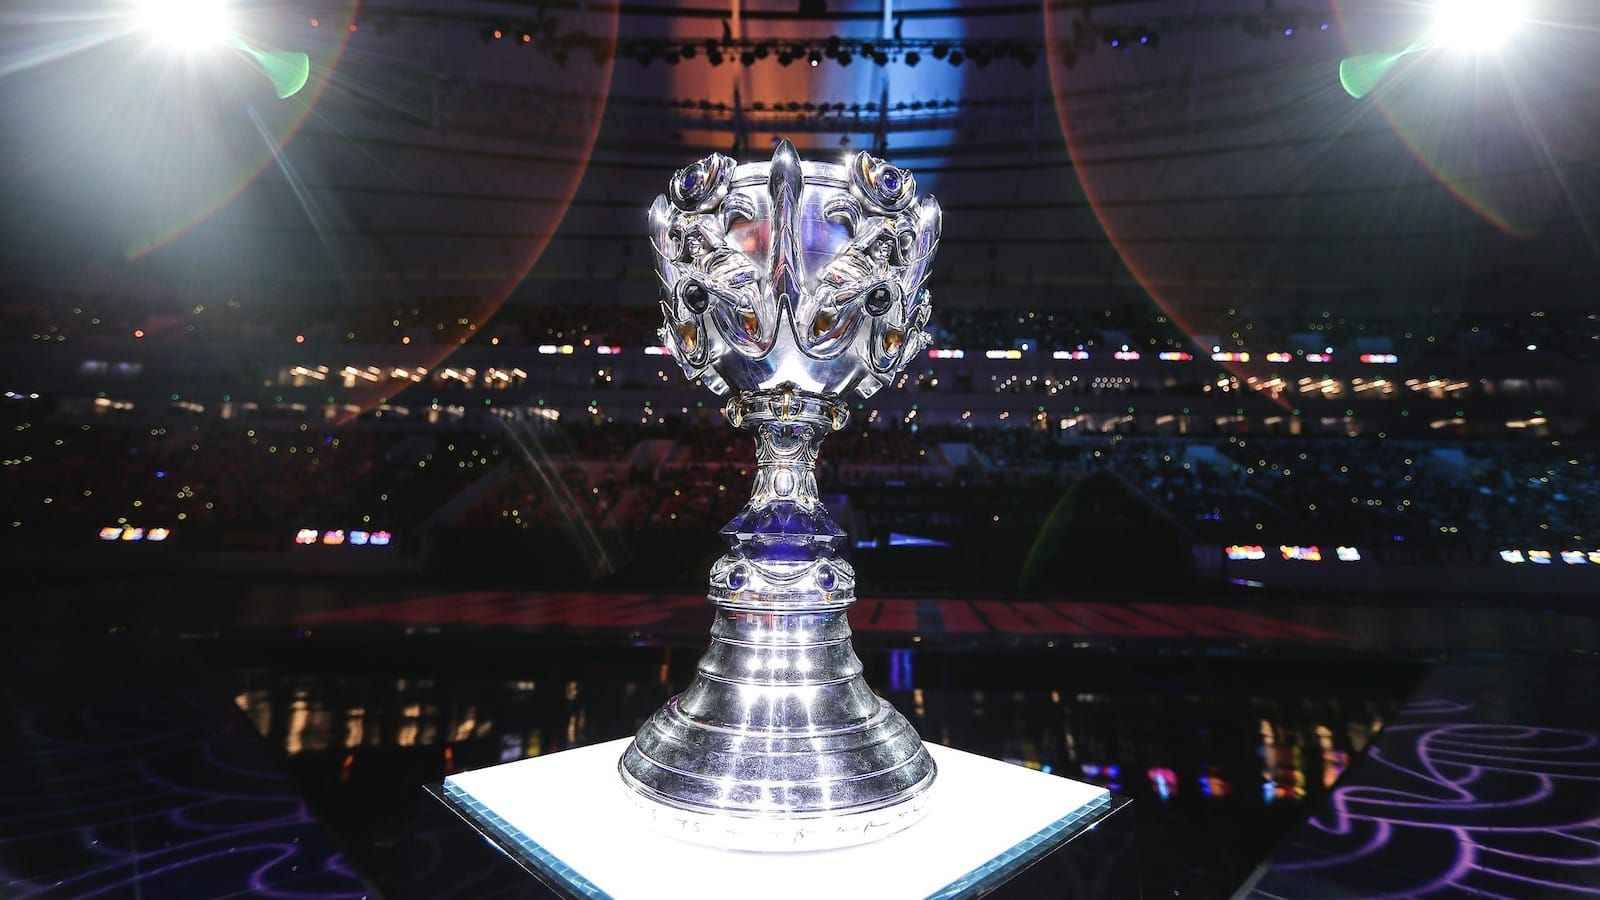 League of Legends world championship trophy the Summoner's Cup displayed on stage